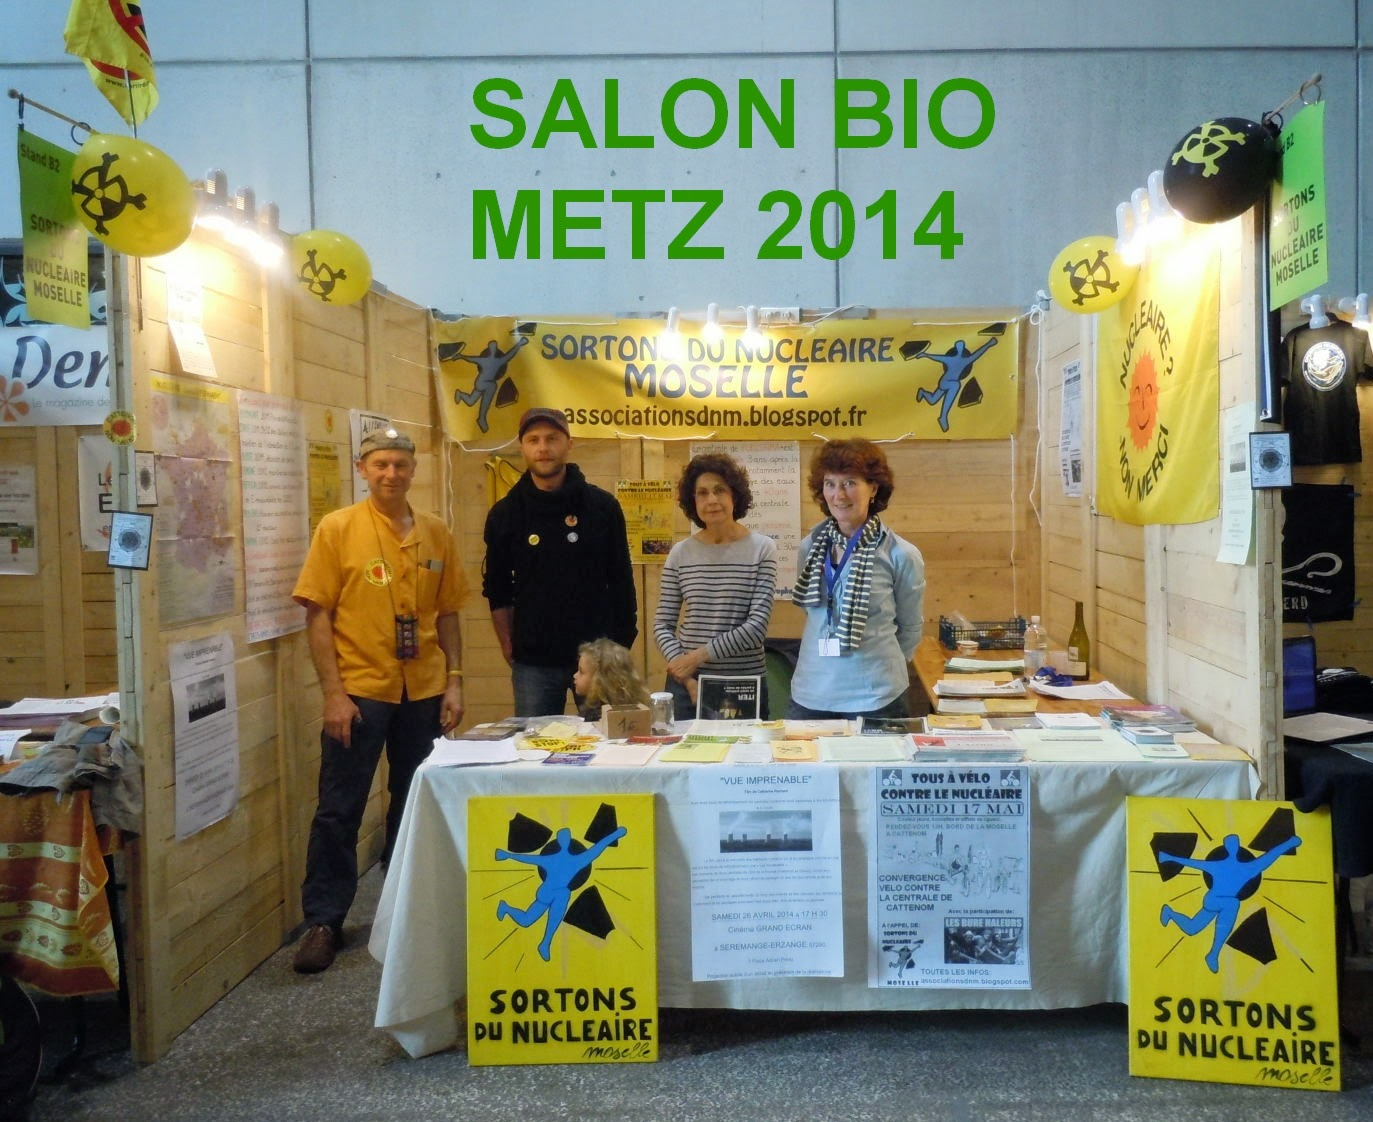 METZ: SALON BIO 2014